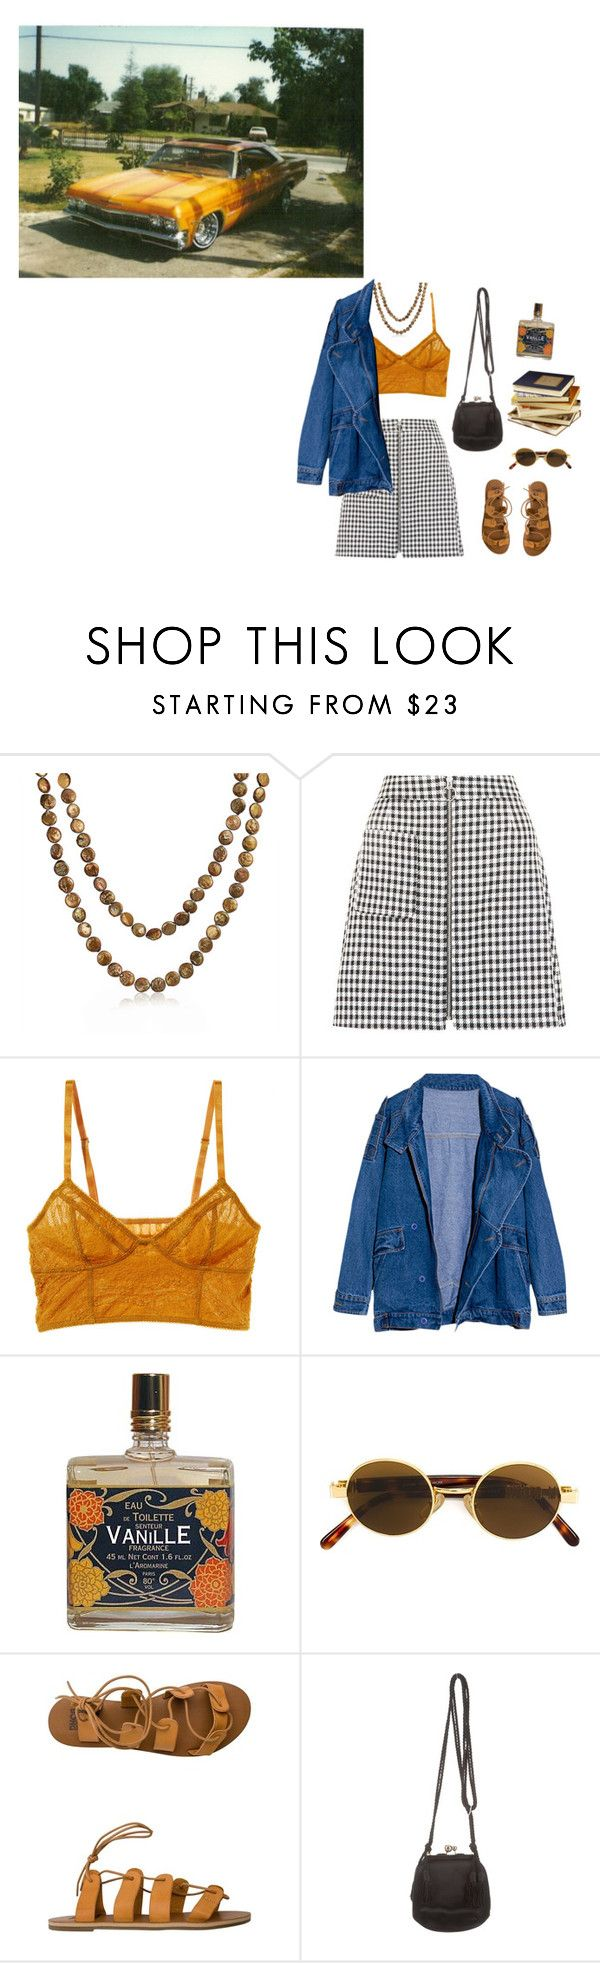 """Times like these"" by ballrooms-of-mars ❤ liked on Polyvore featuring Bling Jewelry, New Look, Intimately Free People, Public Library, Moschino, Billabong and Judith Leiber"